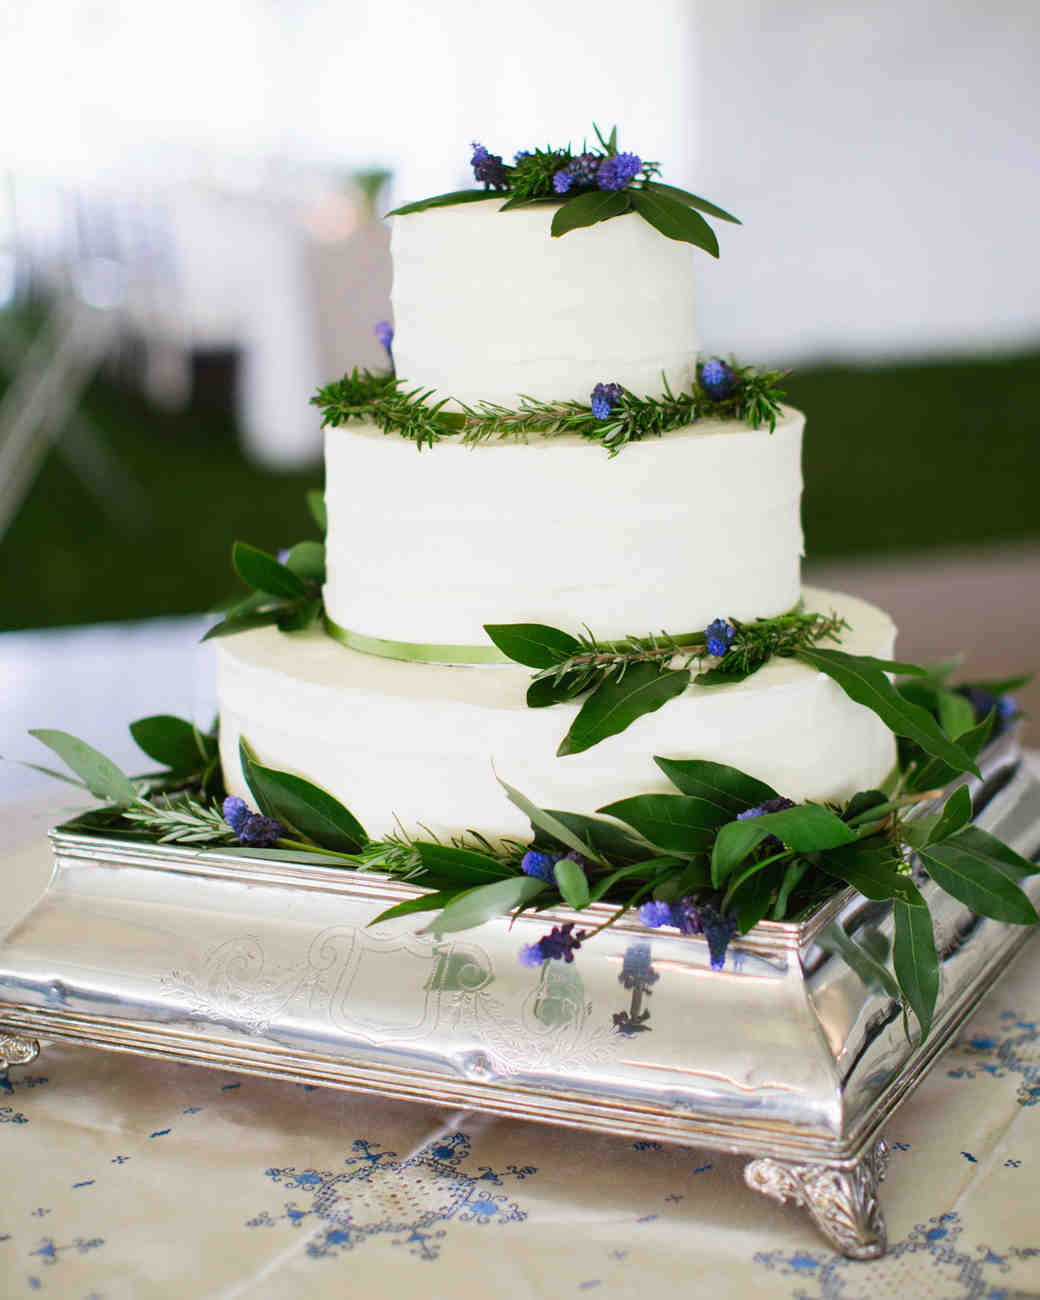 Spring Wedding Cakes: Spring Wedding Cakes That Are (Almost) Too Pretty To Eat